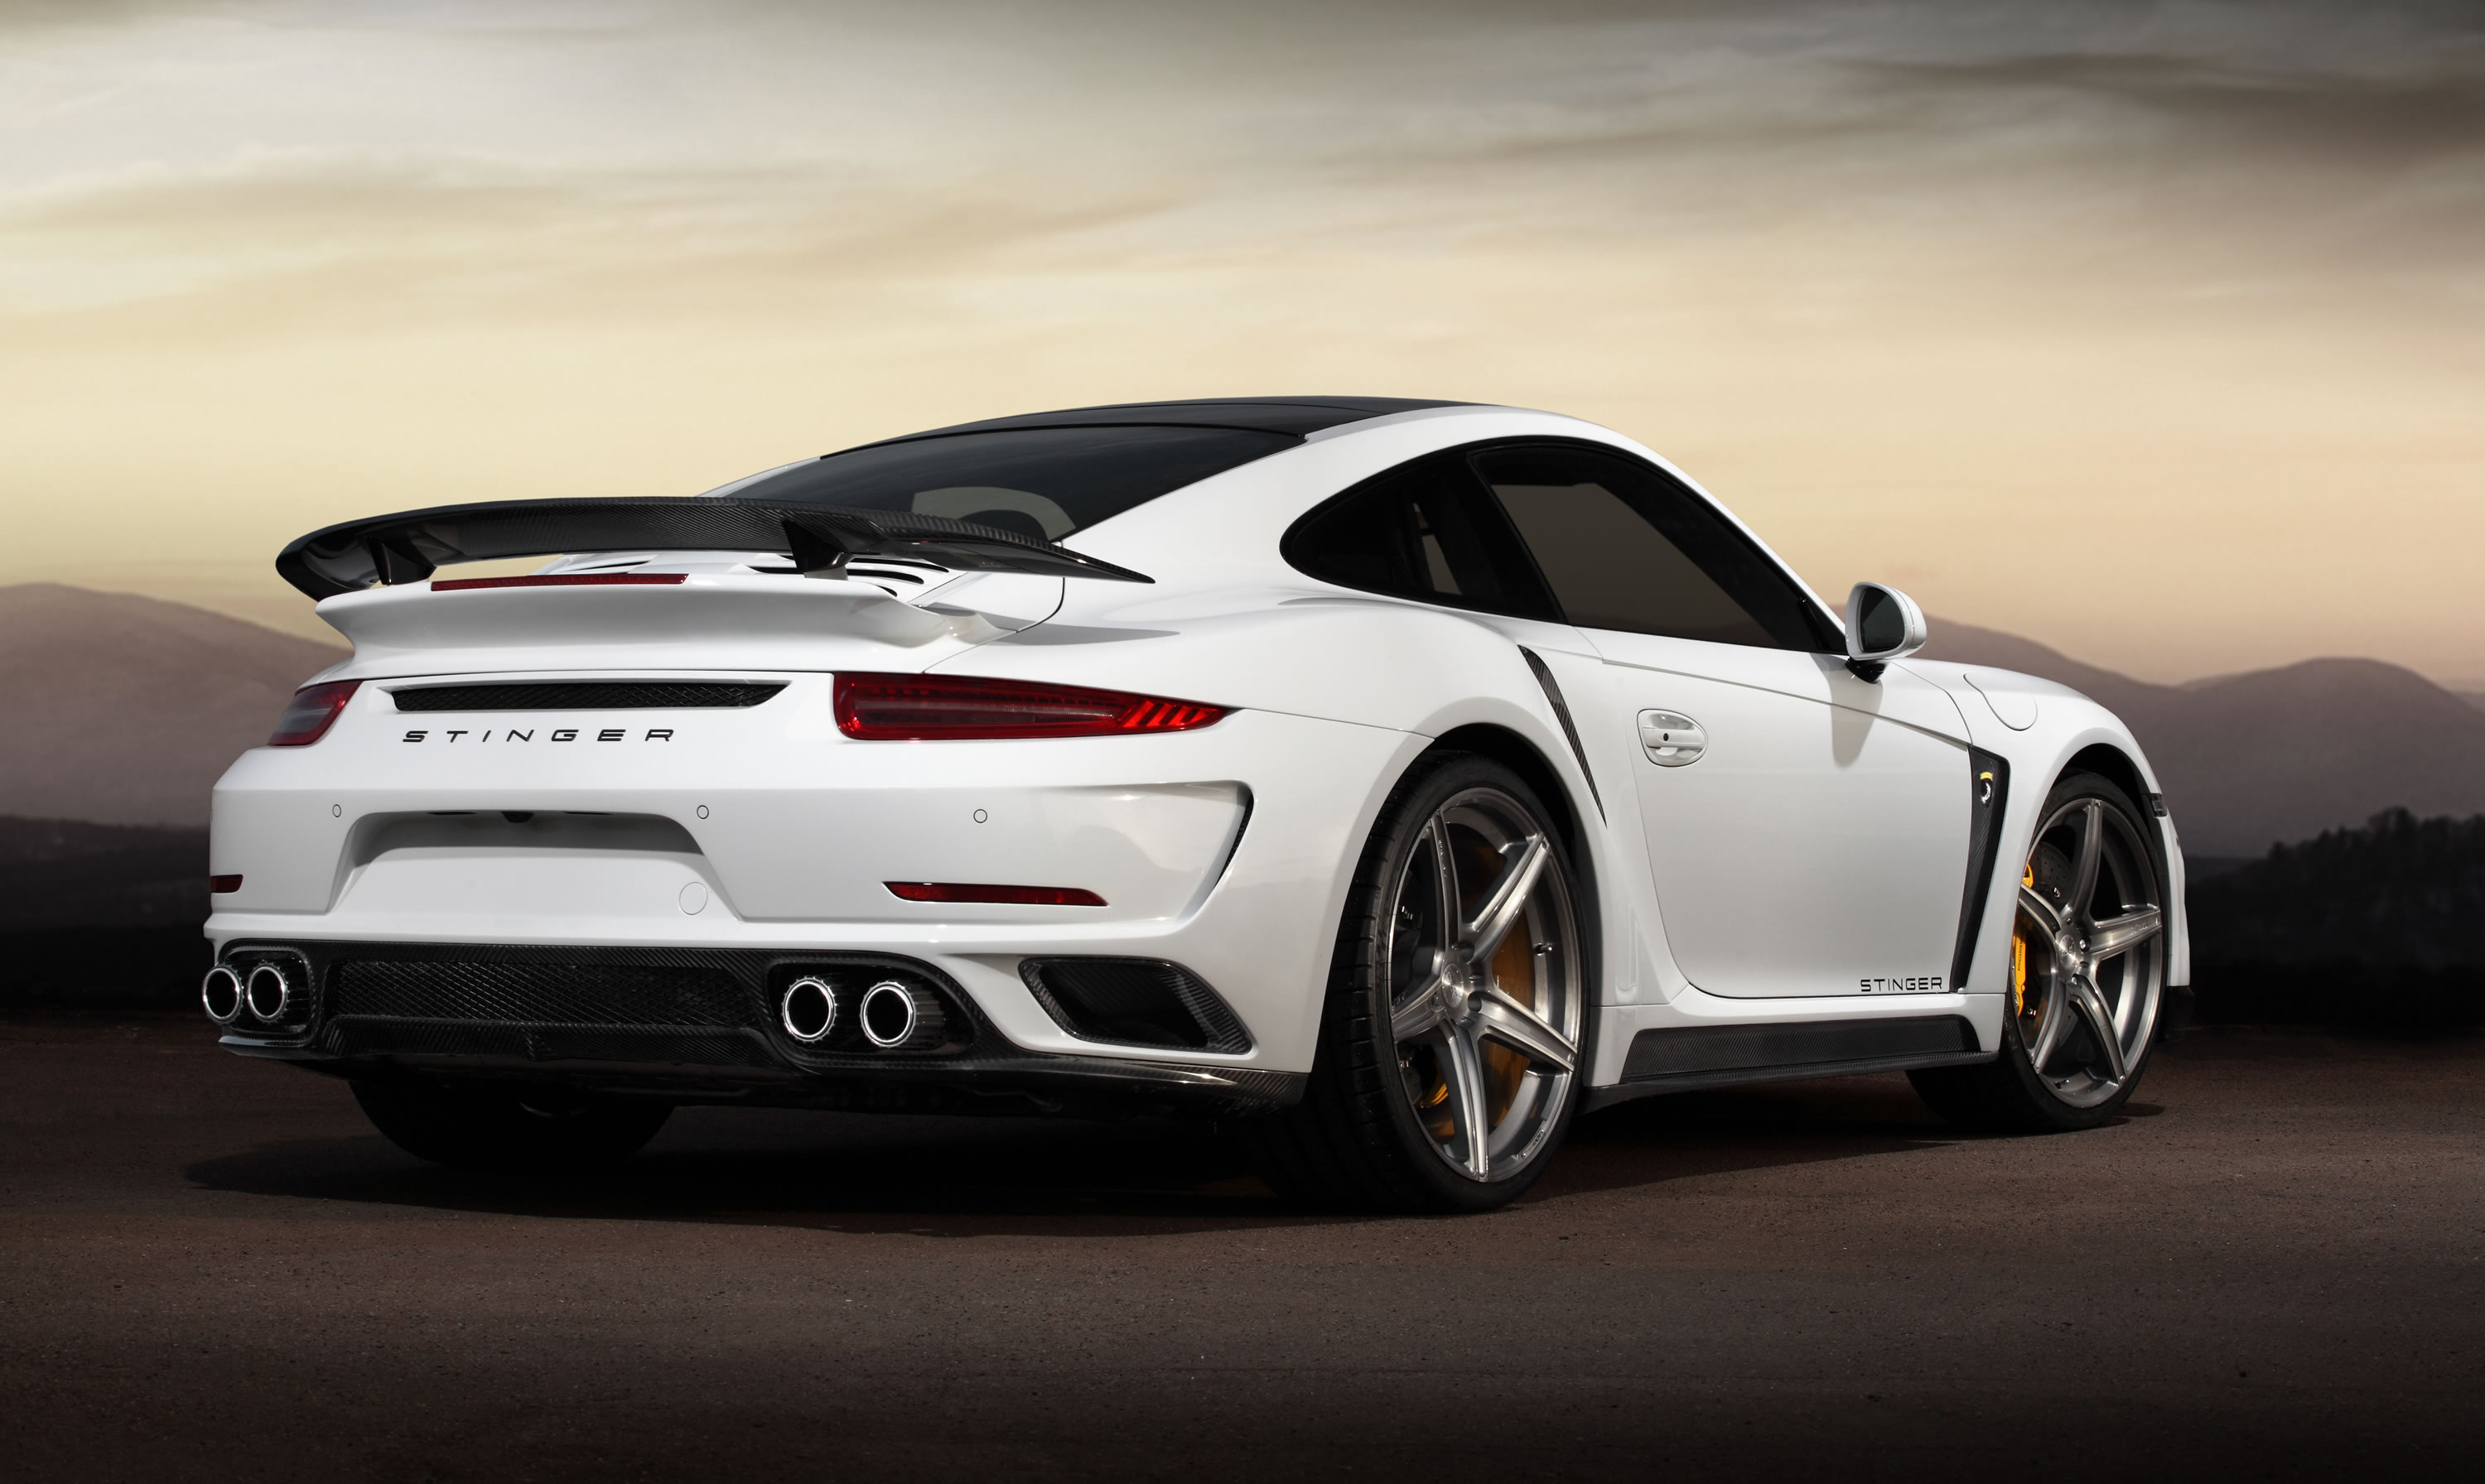 2015 porsche 911 turbo s stinger gtr by topcar photos specs and review rs. Black Bedroom Furniture Sets. Home Design Ideas